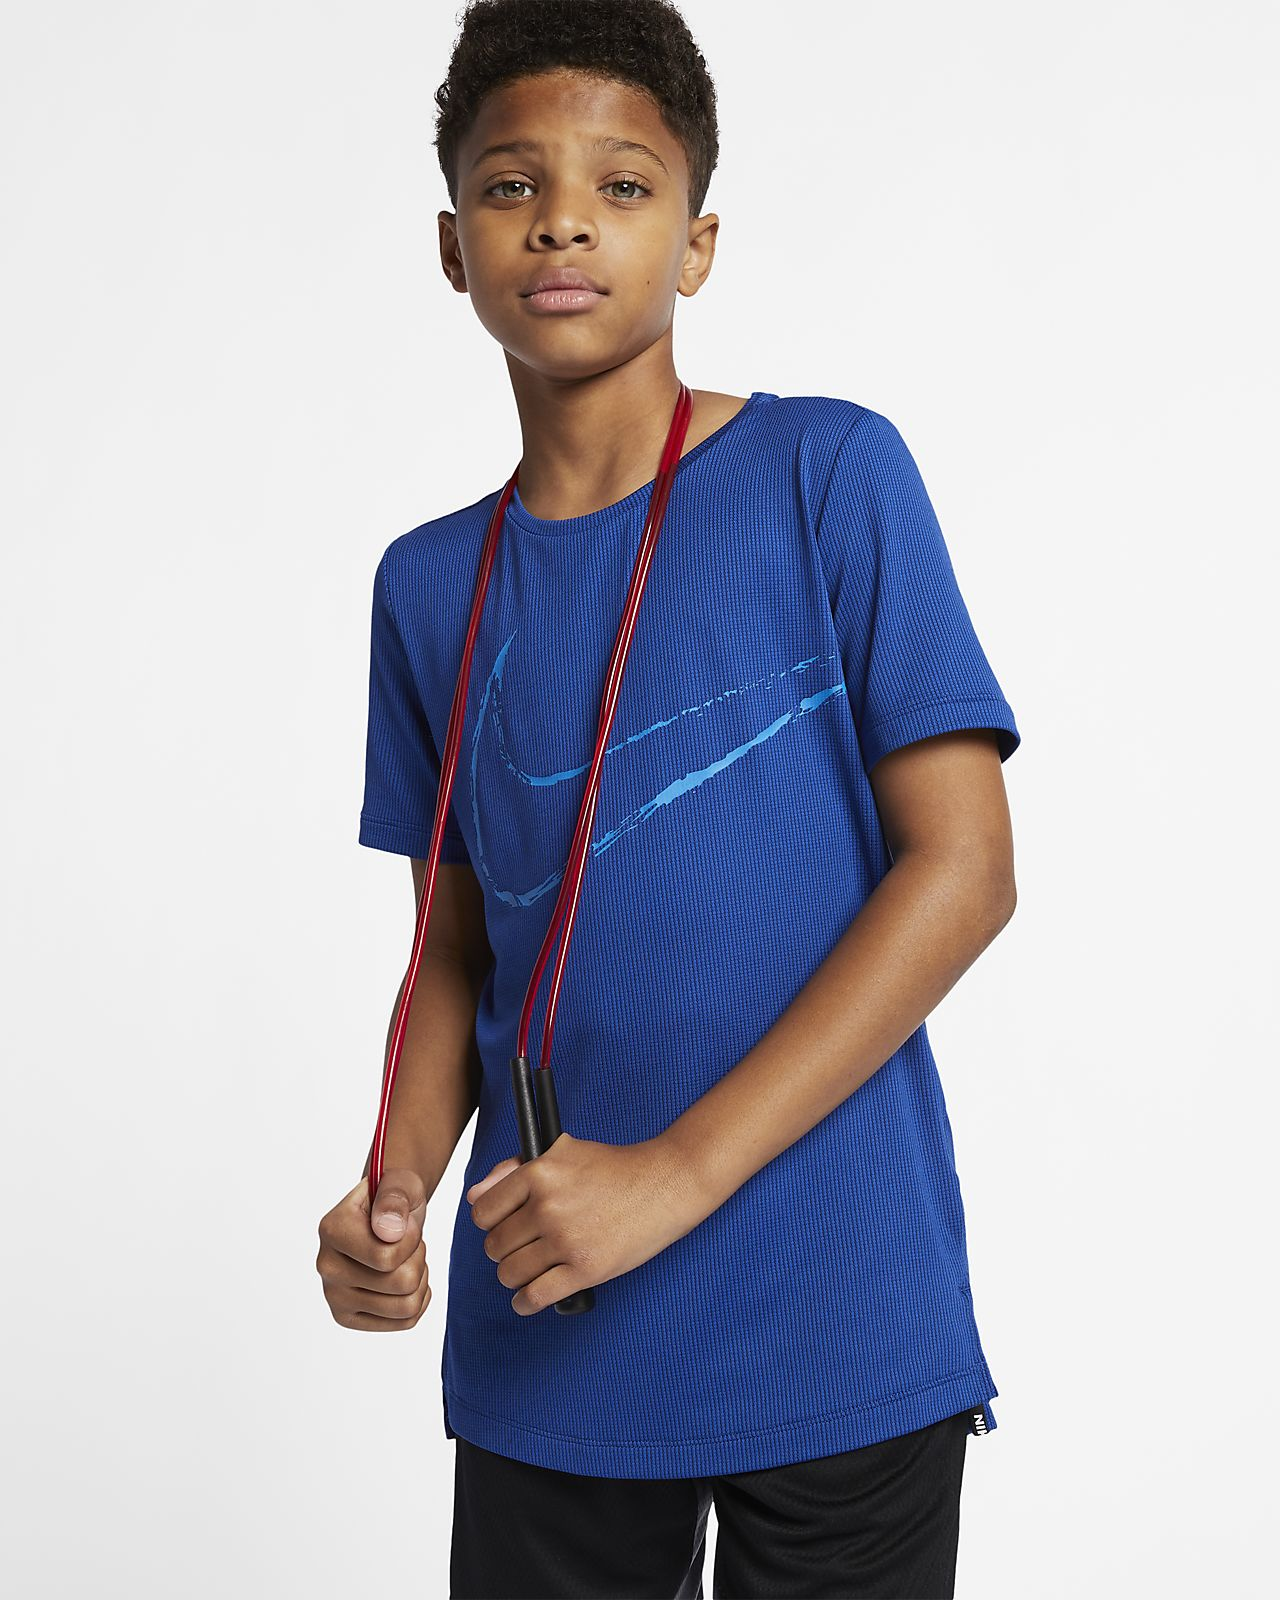 Nike Big Kids' (Boys') Short-Sleeve Fitted Training Top